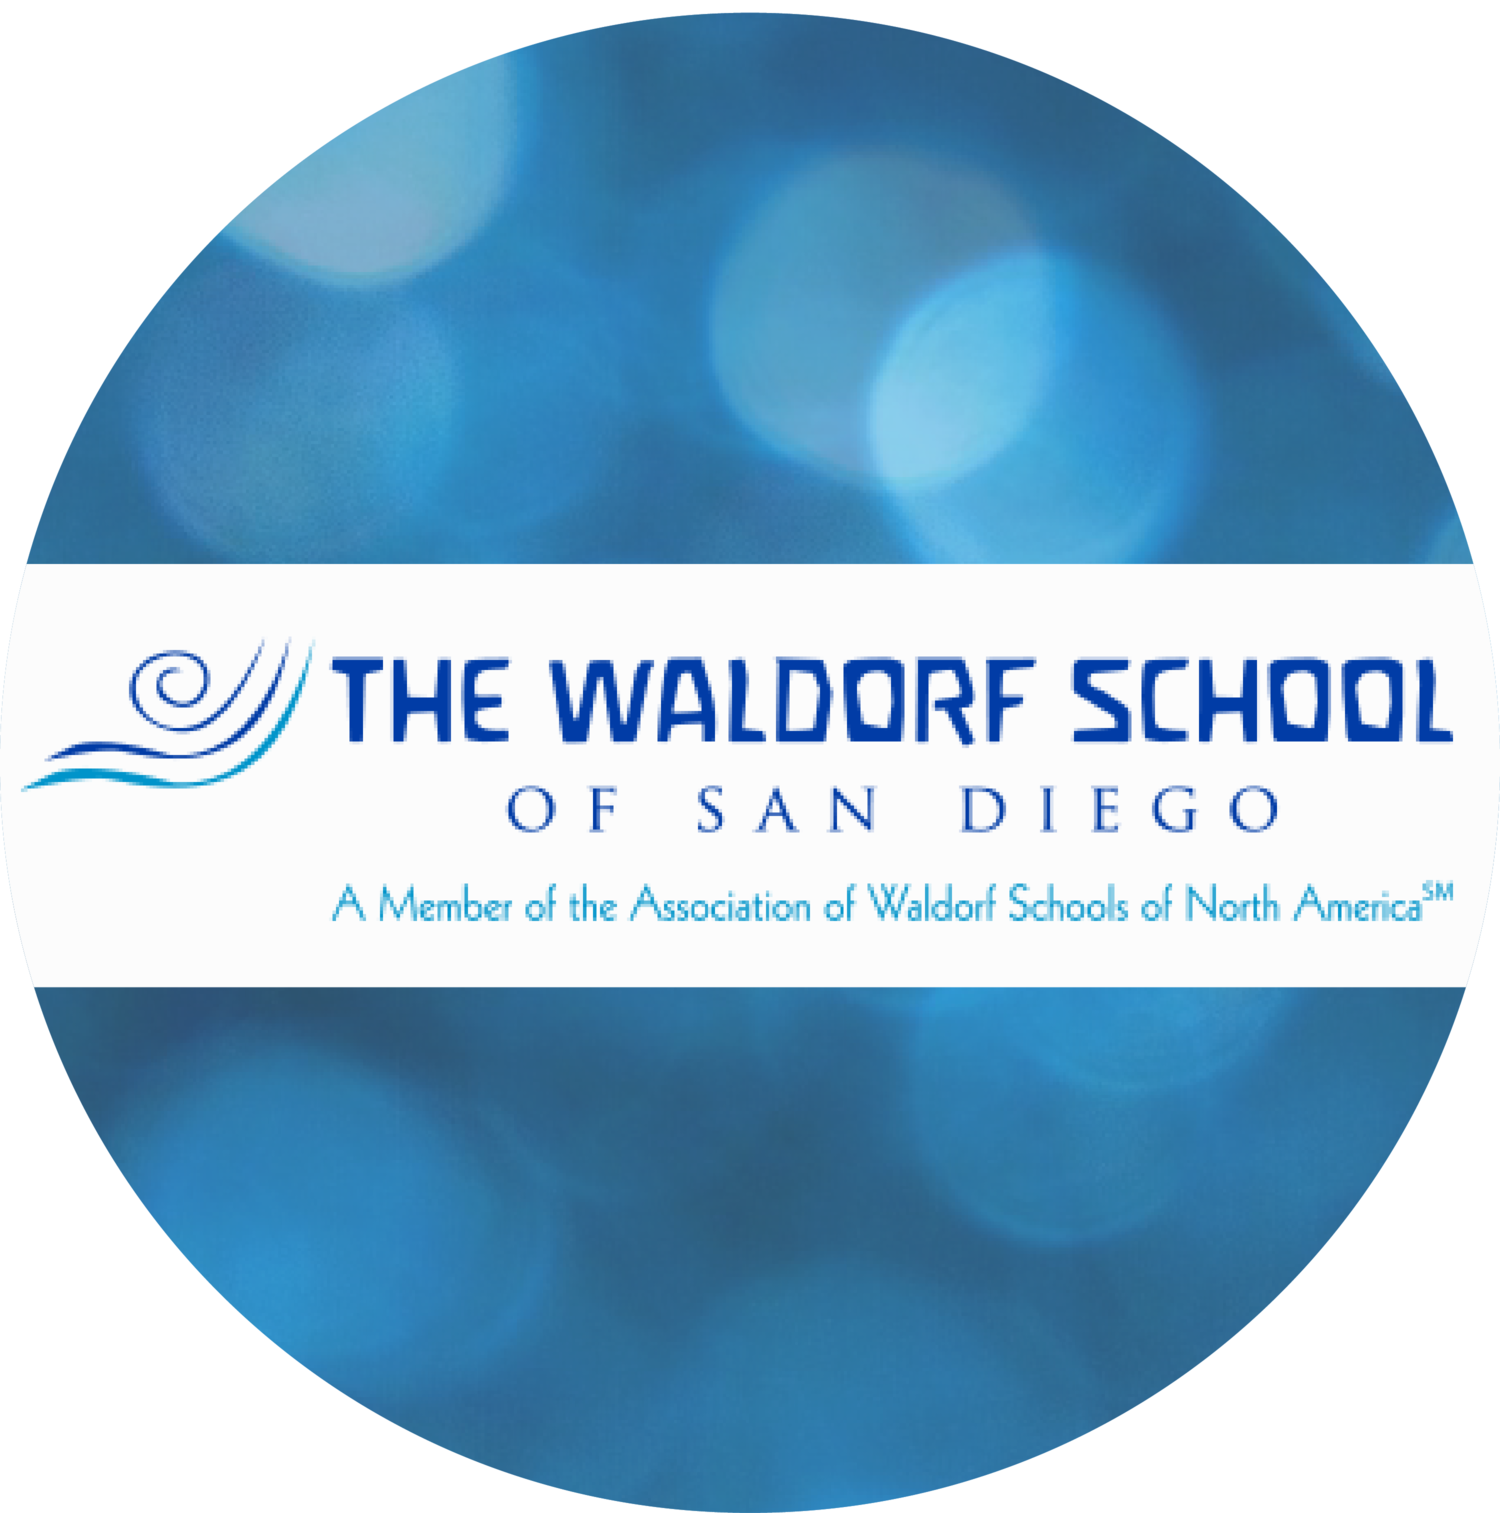 The+Waldorf+School